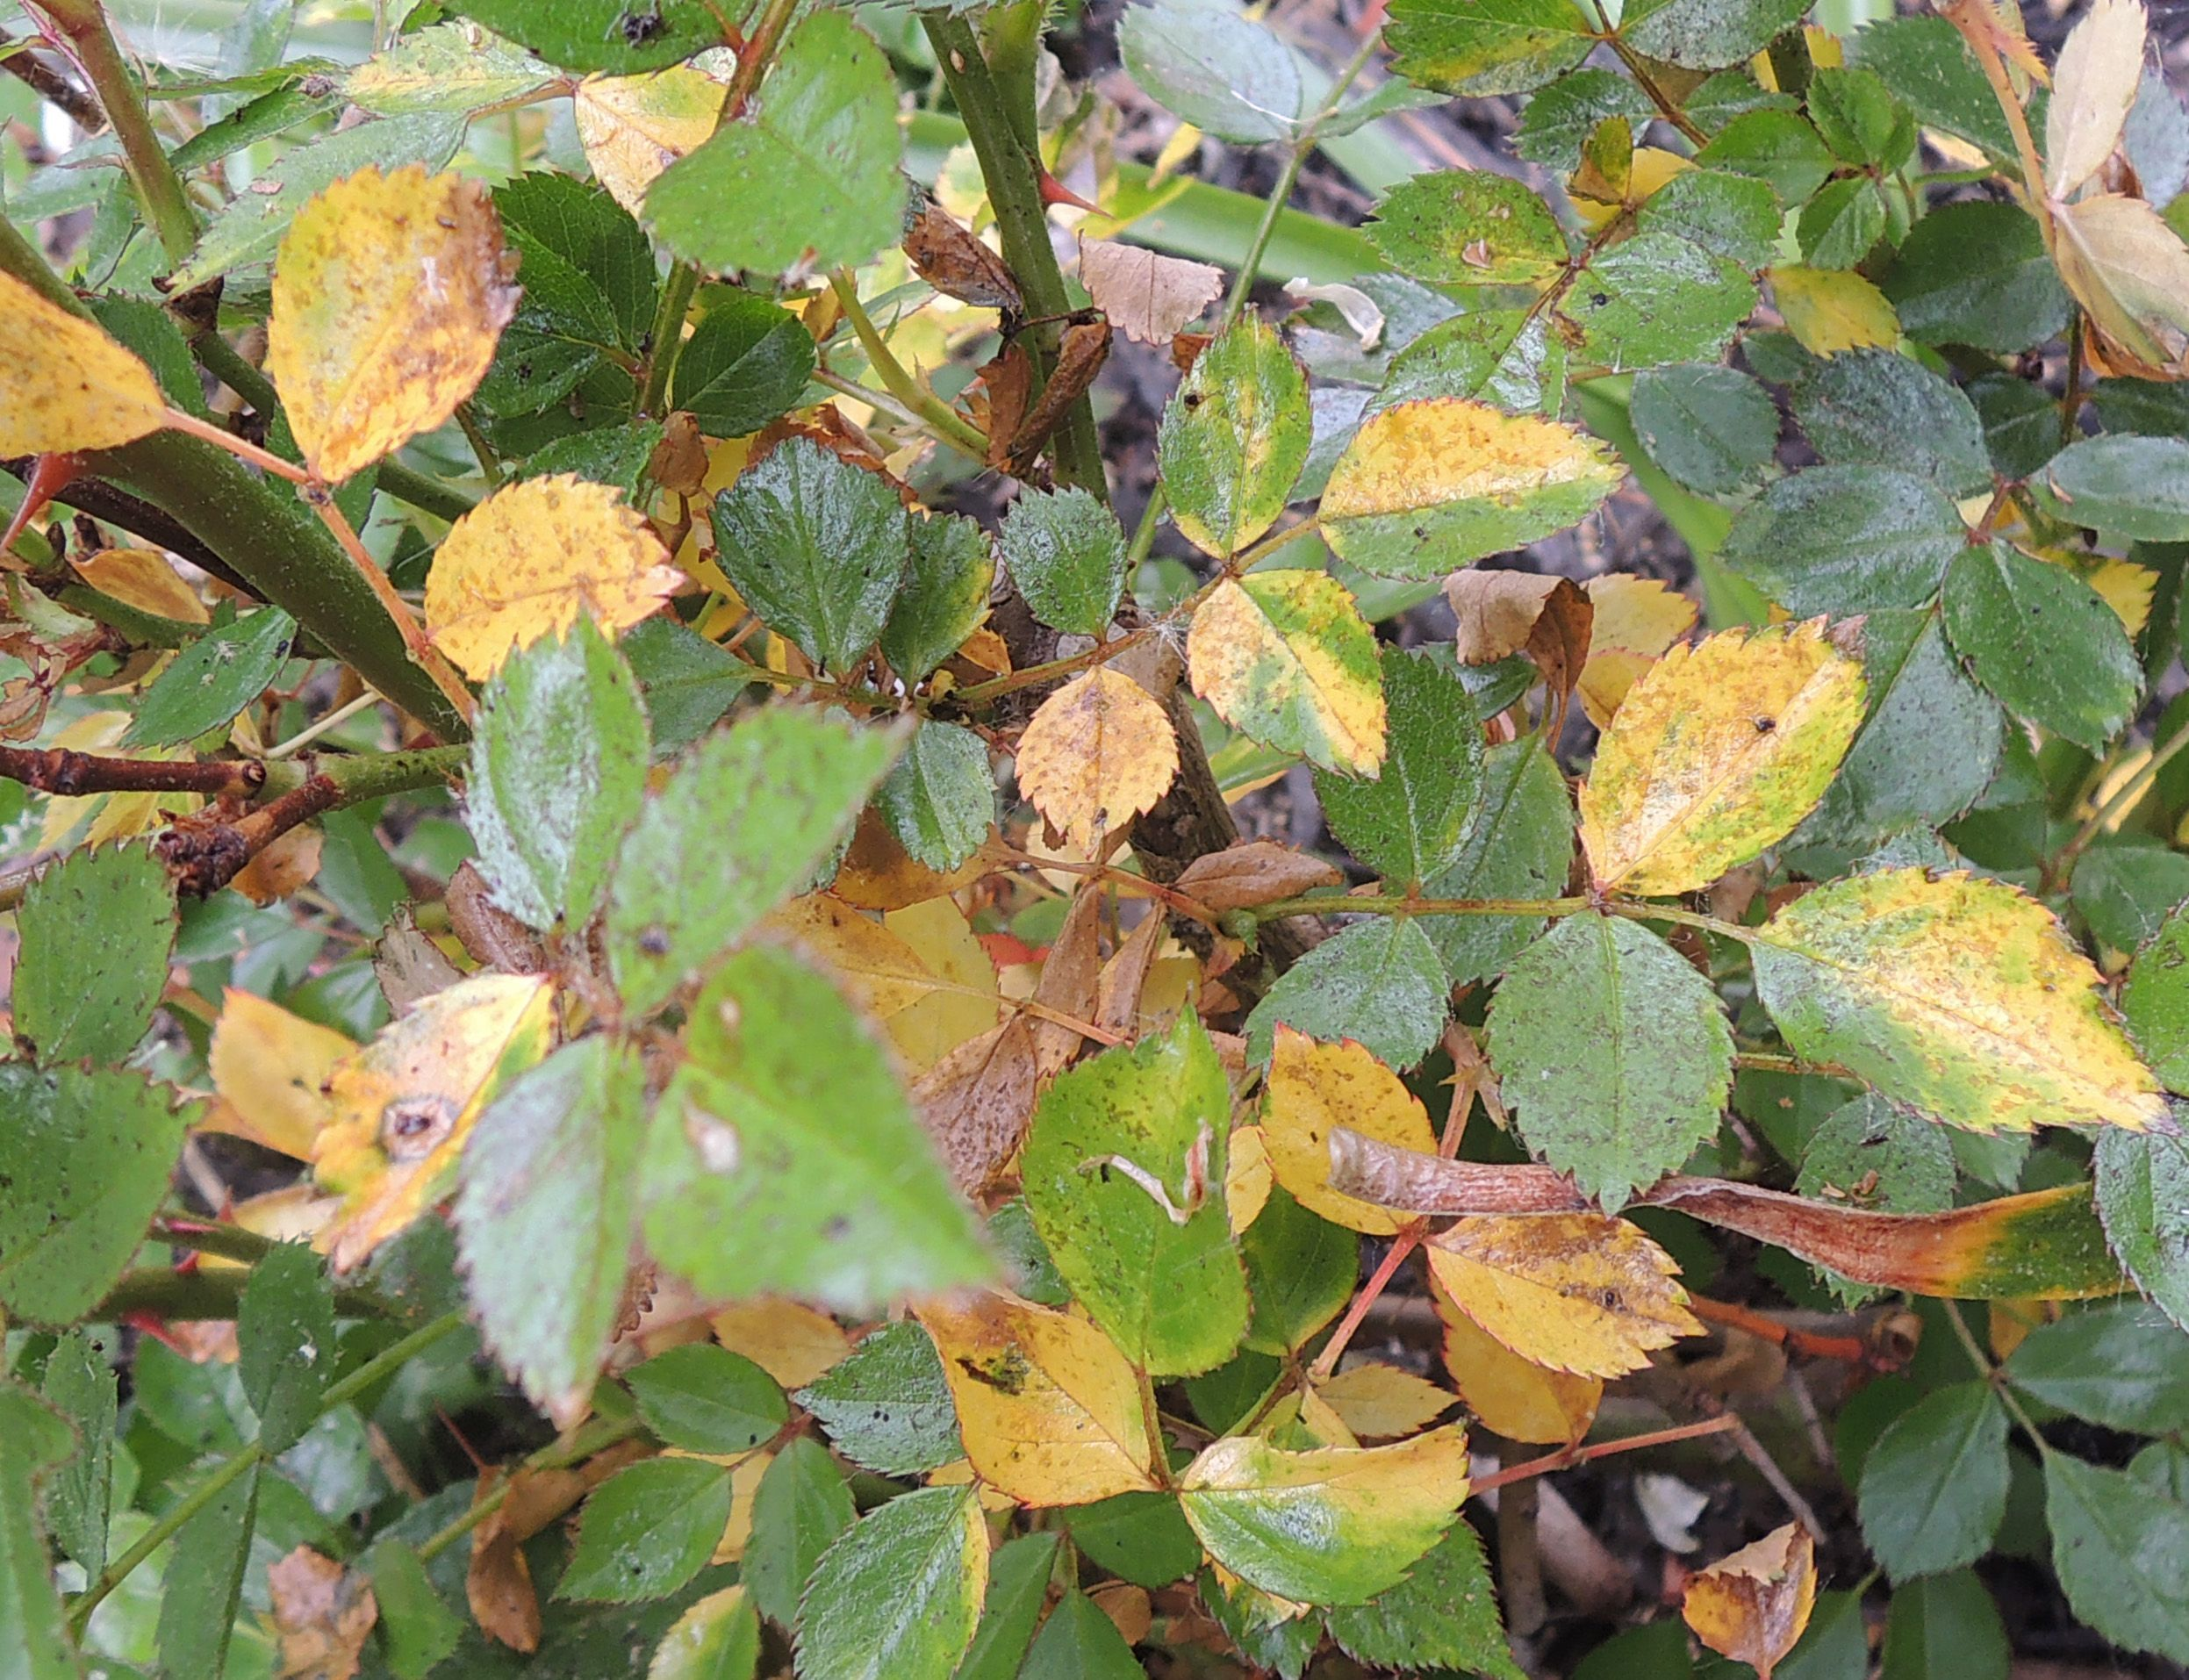 Yellow Leaves On A Rose Bush Can Be A Frustrating Sight When Rose Leaves Turn Yello Yellow Leaves On Roses Plant Leaves Turning Yellow Yellow Leaves On Plants